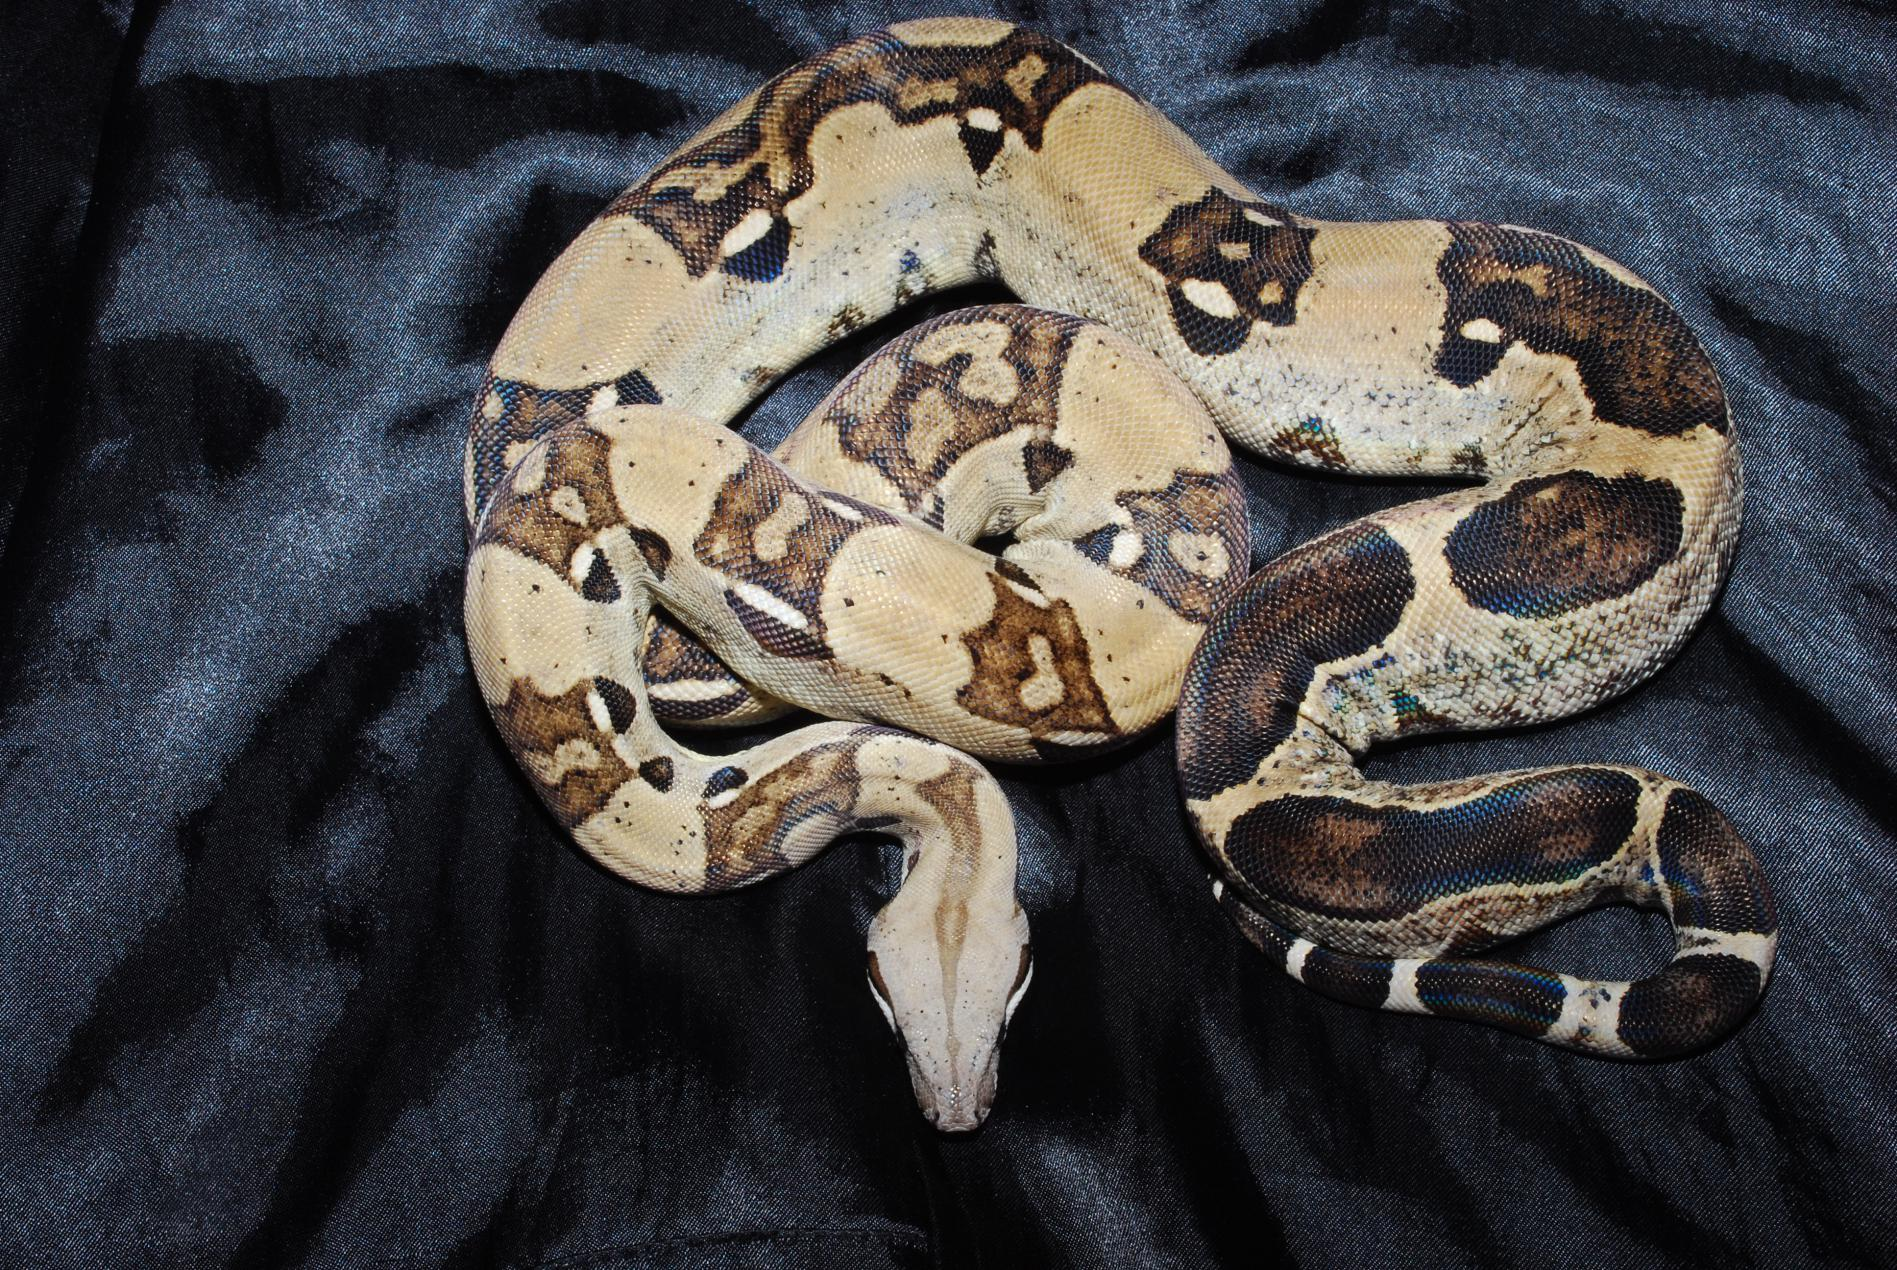 Male Anery Boa Constrictor for Sale-dsc_0143.jpg